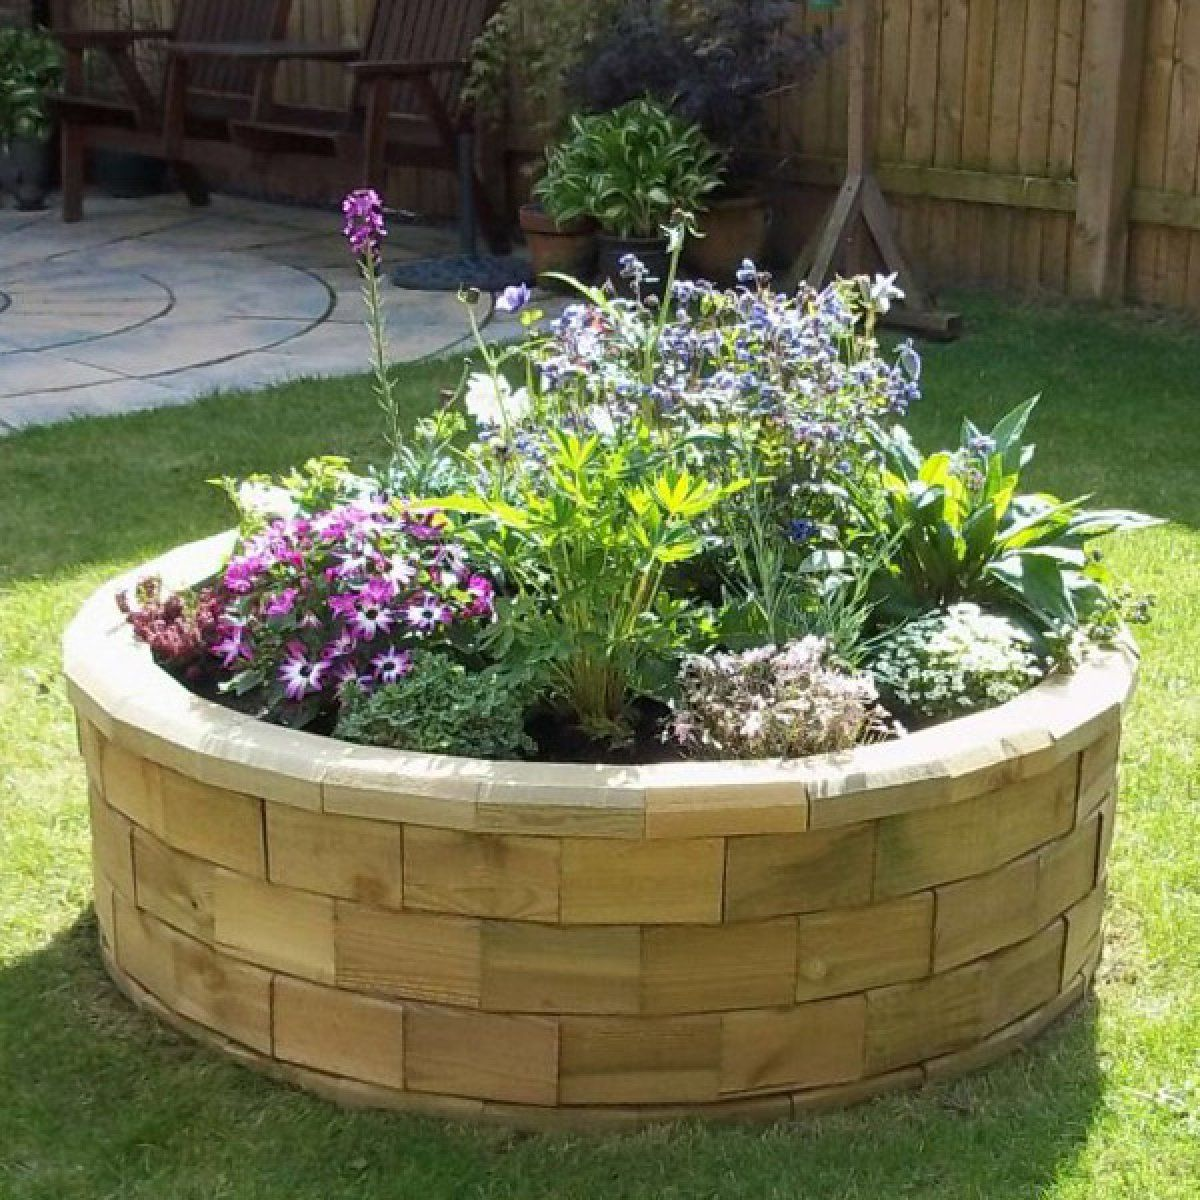 20 Raised Bed Garden Designs And Beautiful Backyard: Circular Raised Bed Best Seller / 1.23 X 0.35m